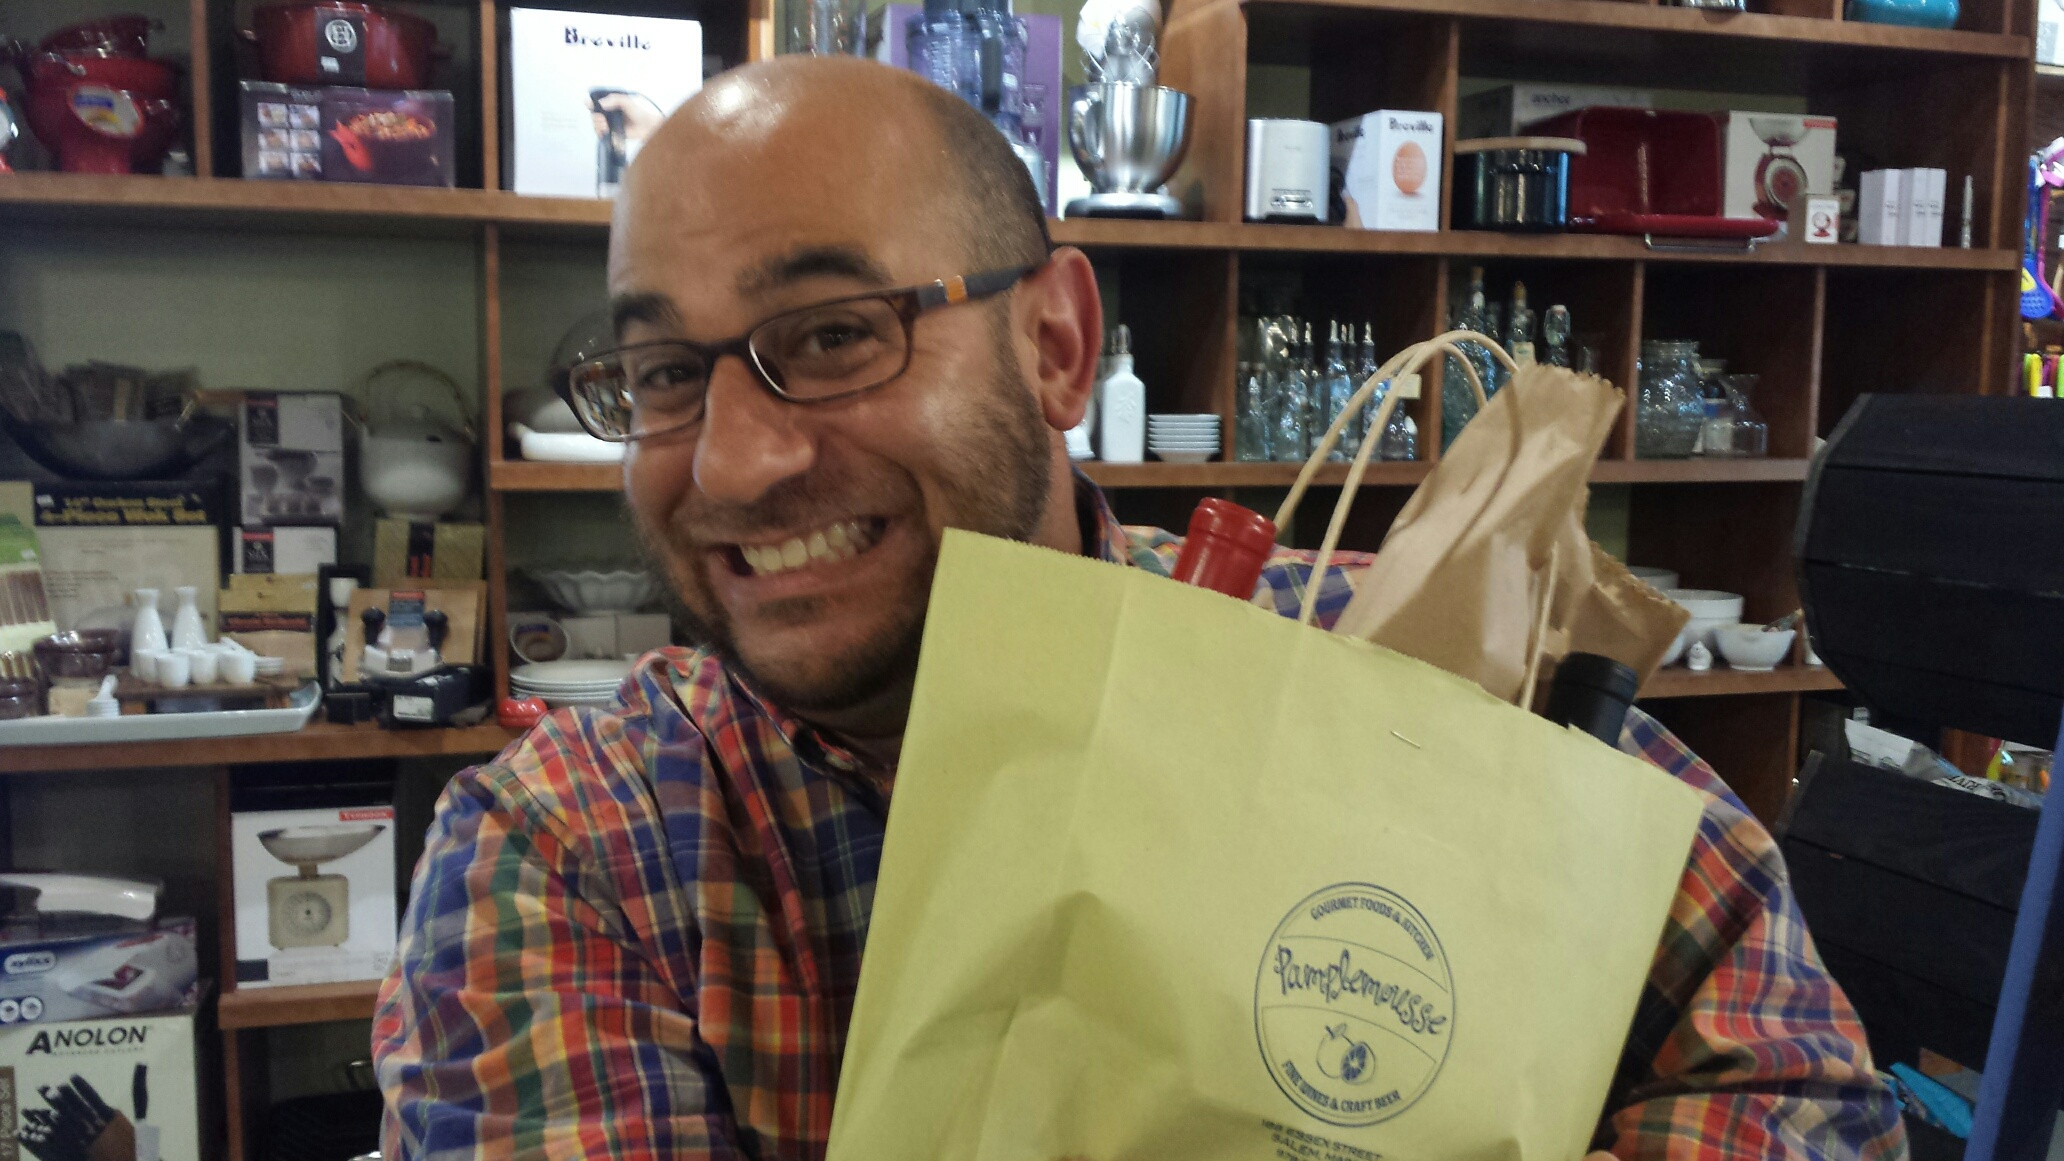 Rob was very excited to pick up his first delivery of the Pamplemousse Wine Club!